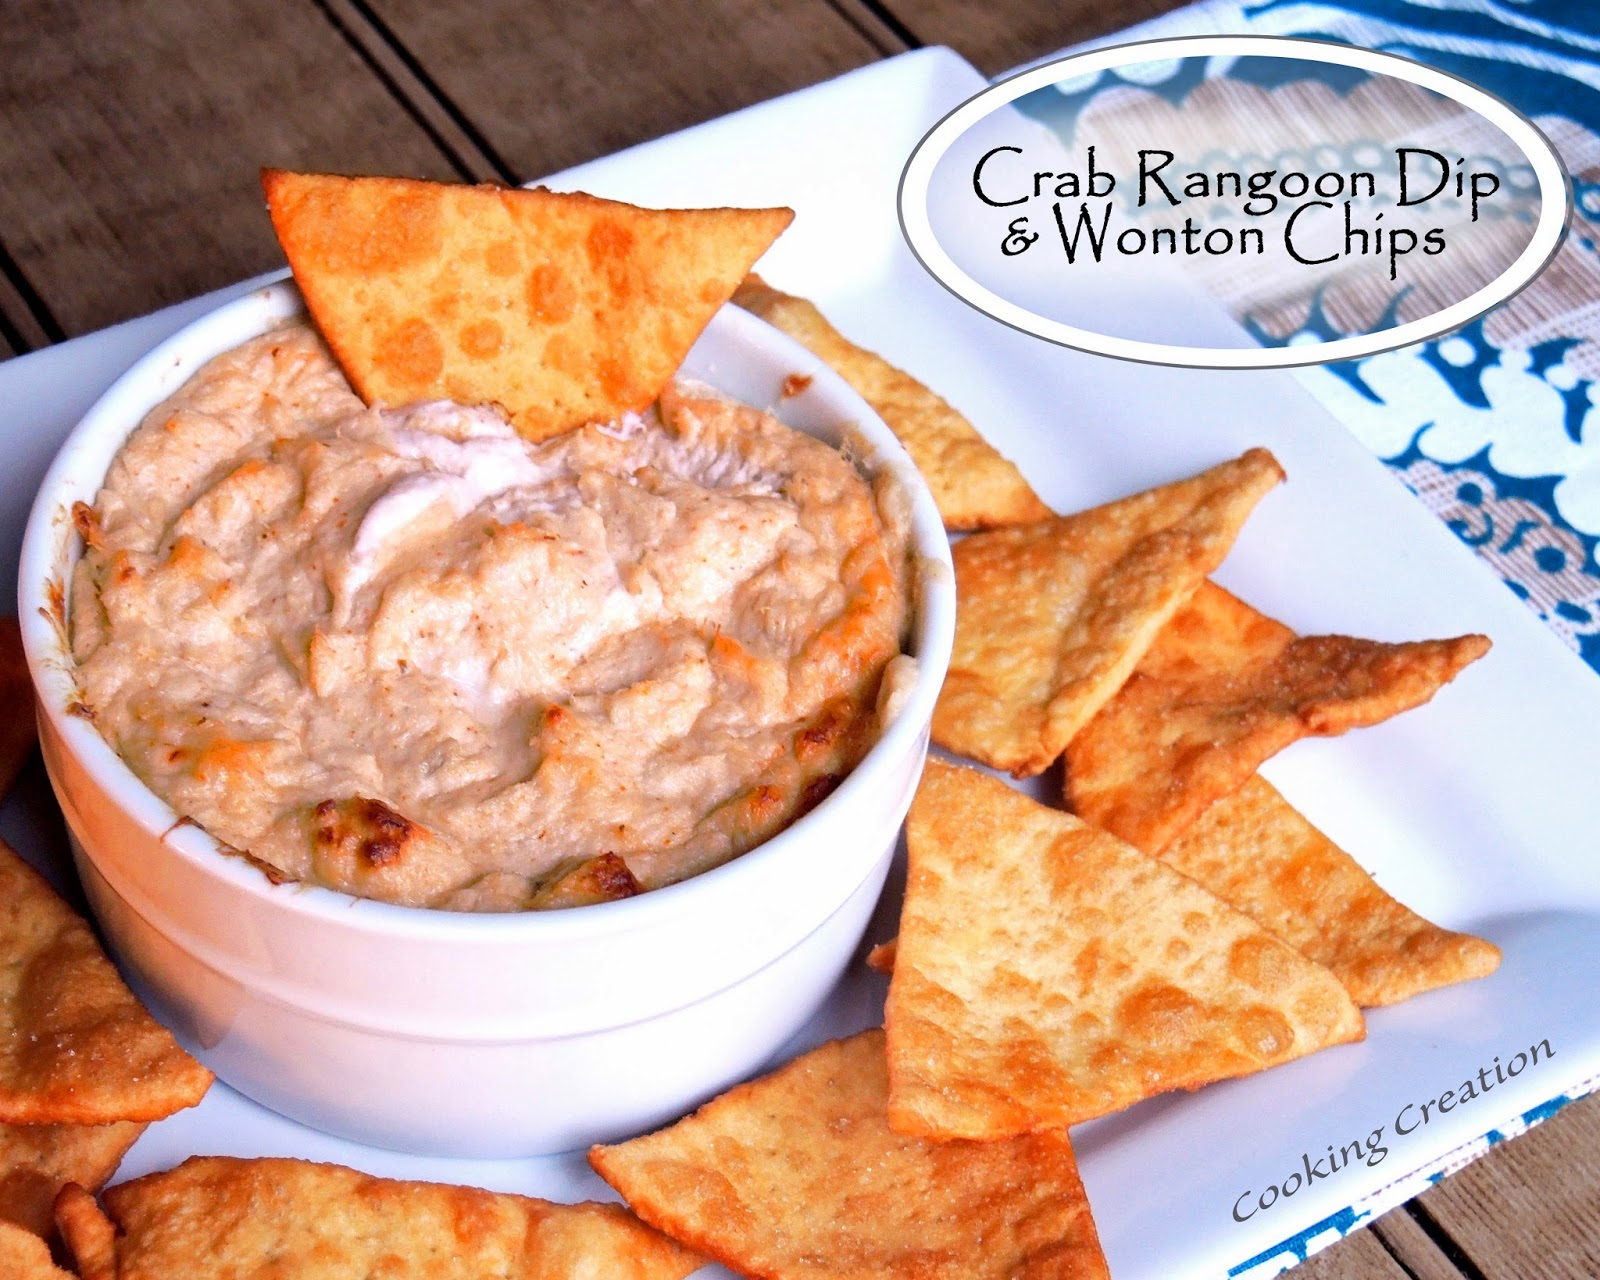 Cooking Creation: Baked Crab Rangoon Dip & Homemade Wonton Chips